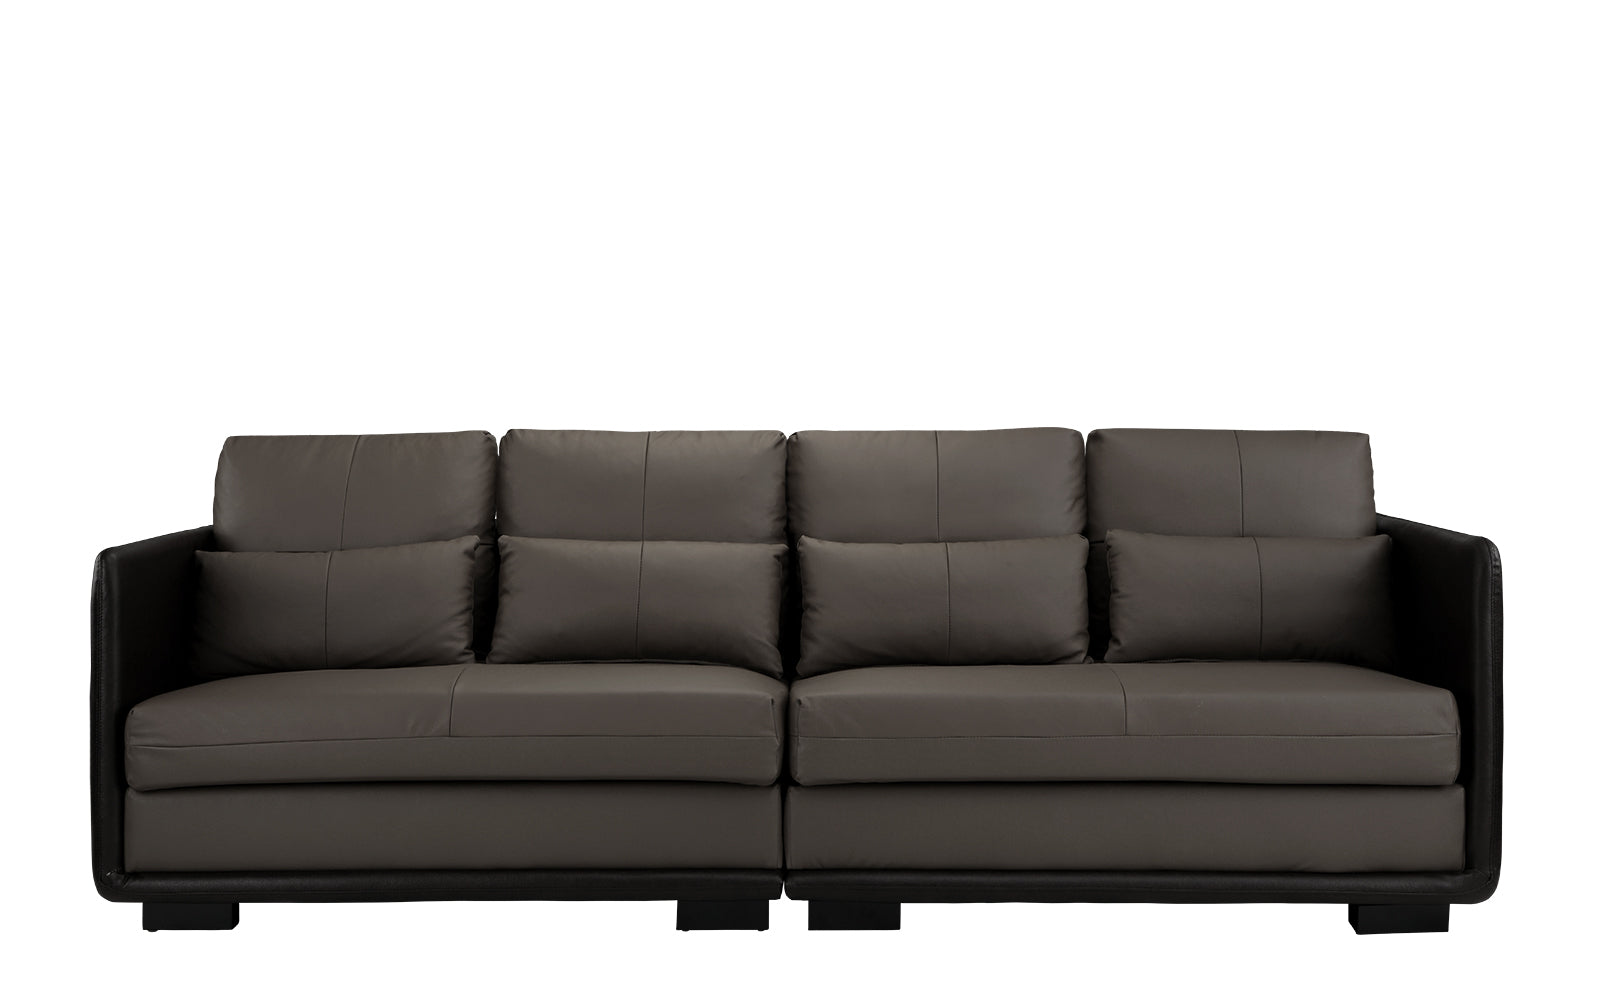 Convertible Leather Sofa Image